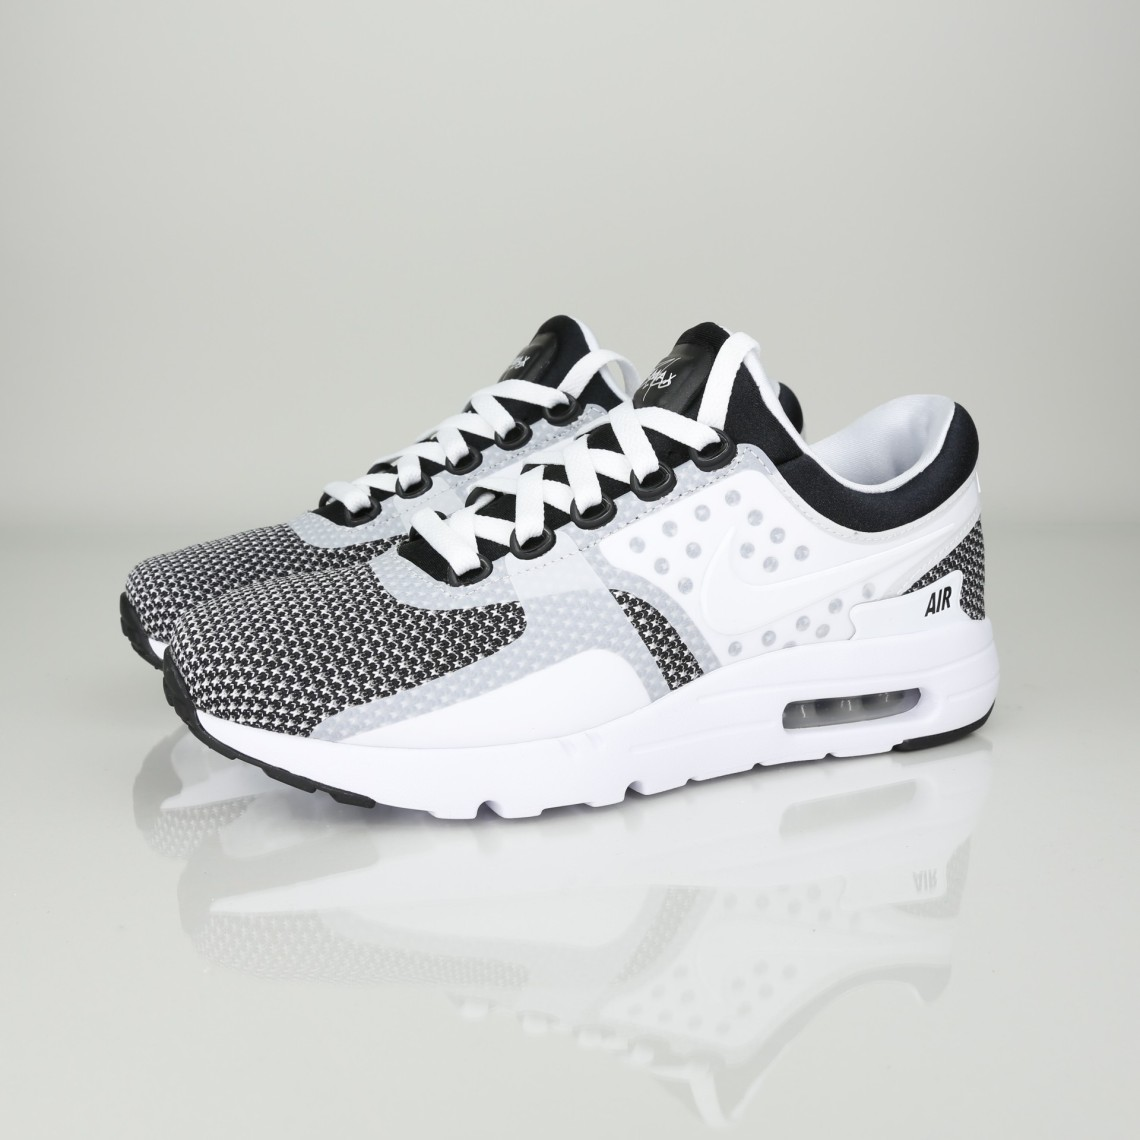 free shipping recognized brands detailing NIKE AIR MAX ZERO ESSENTIAL